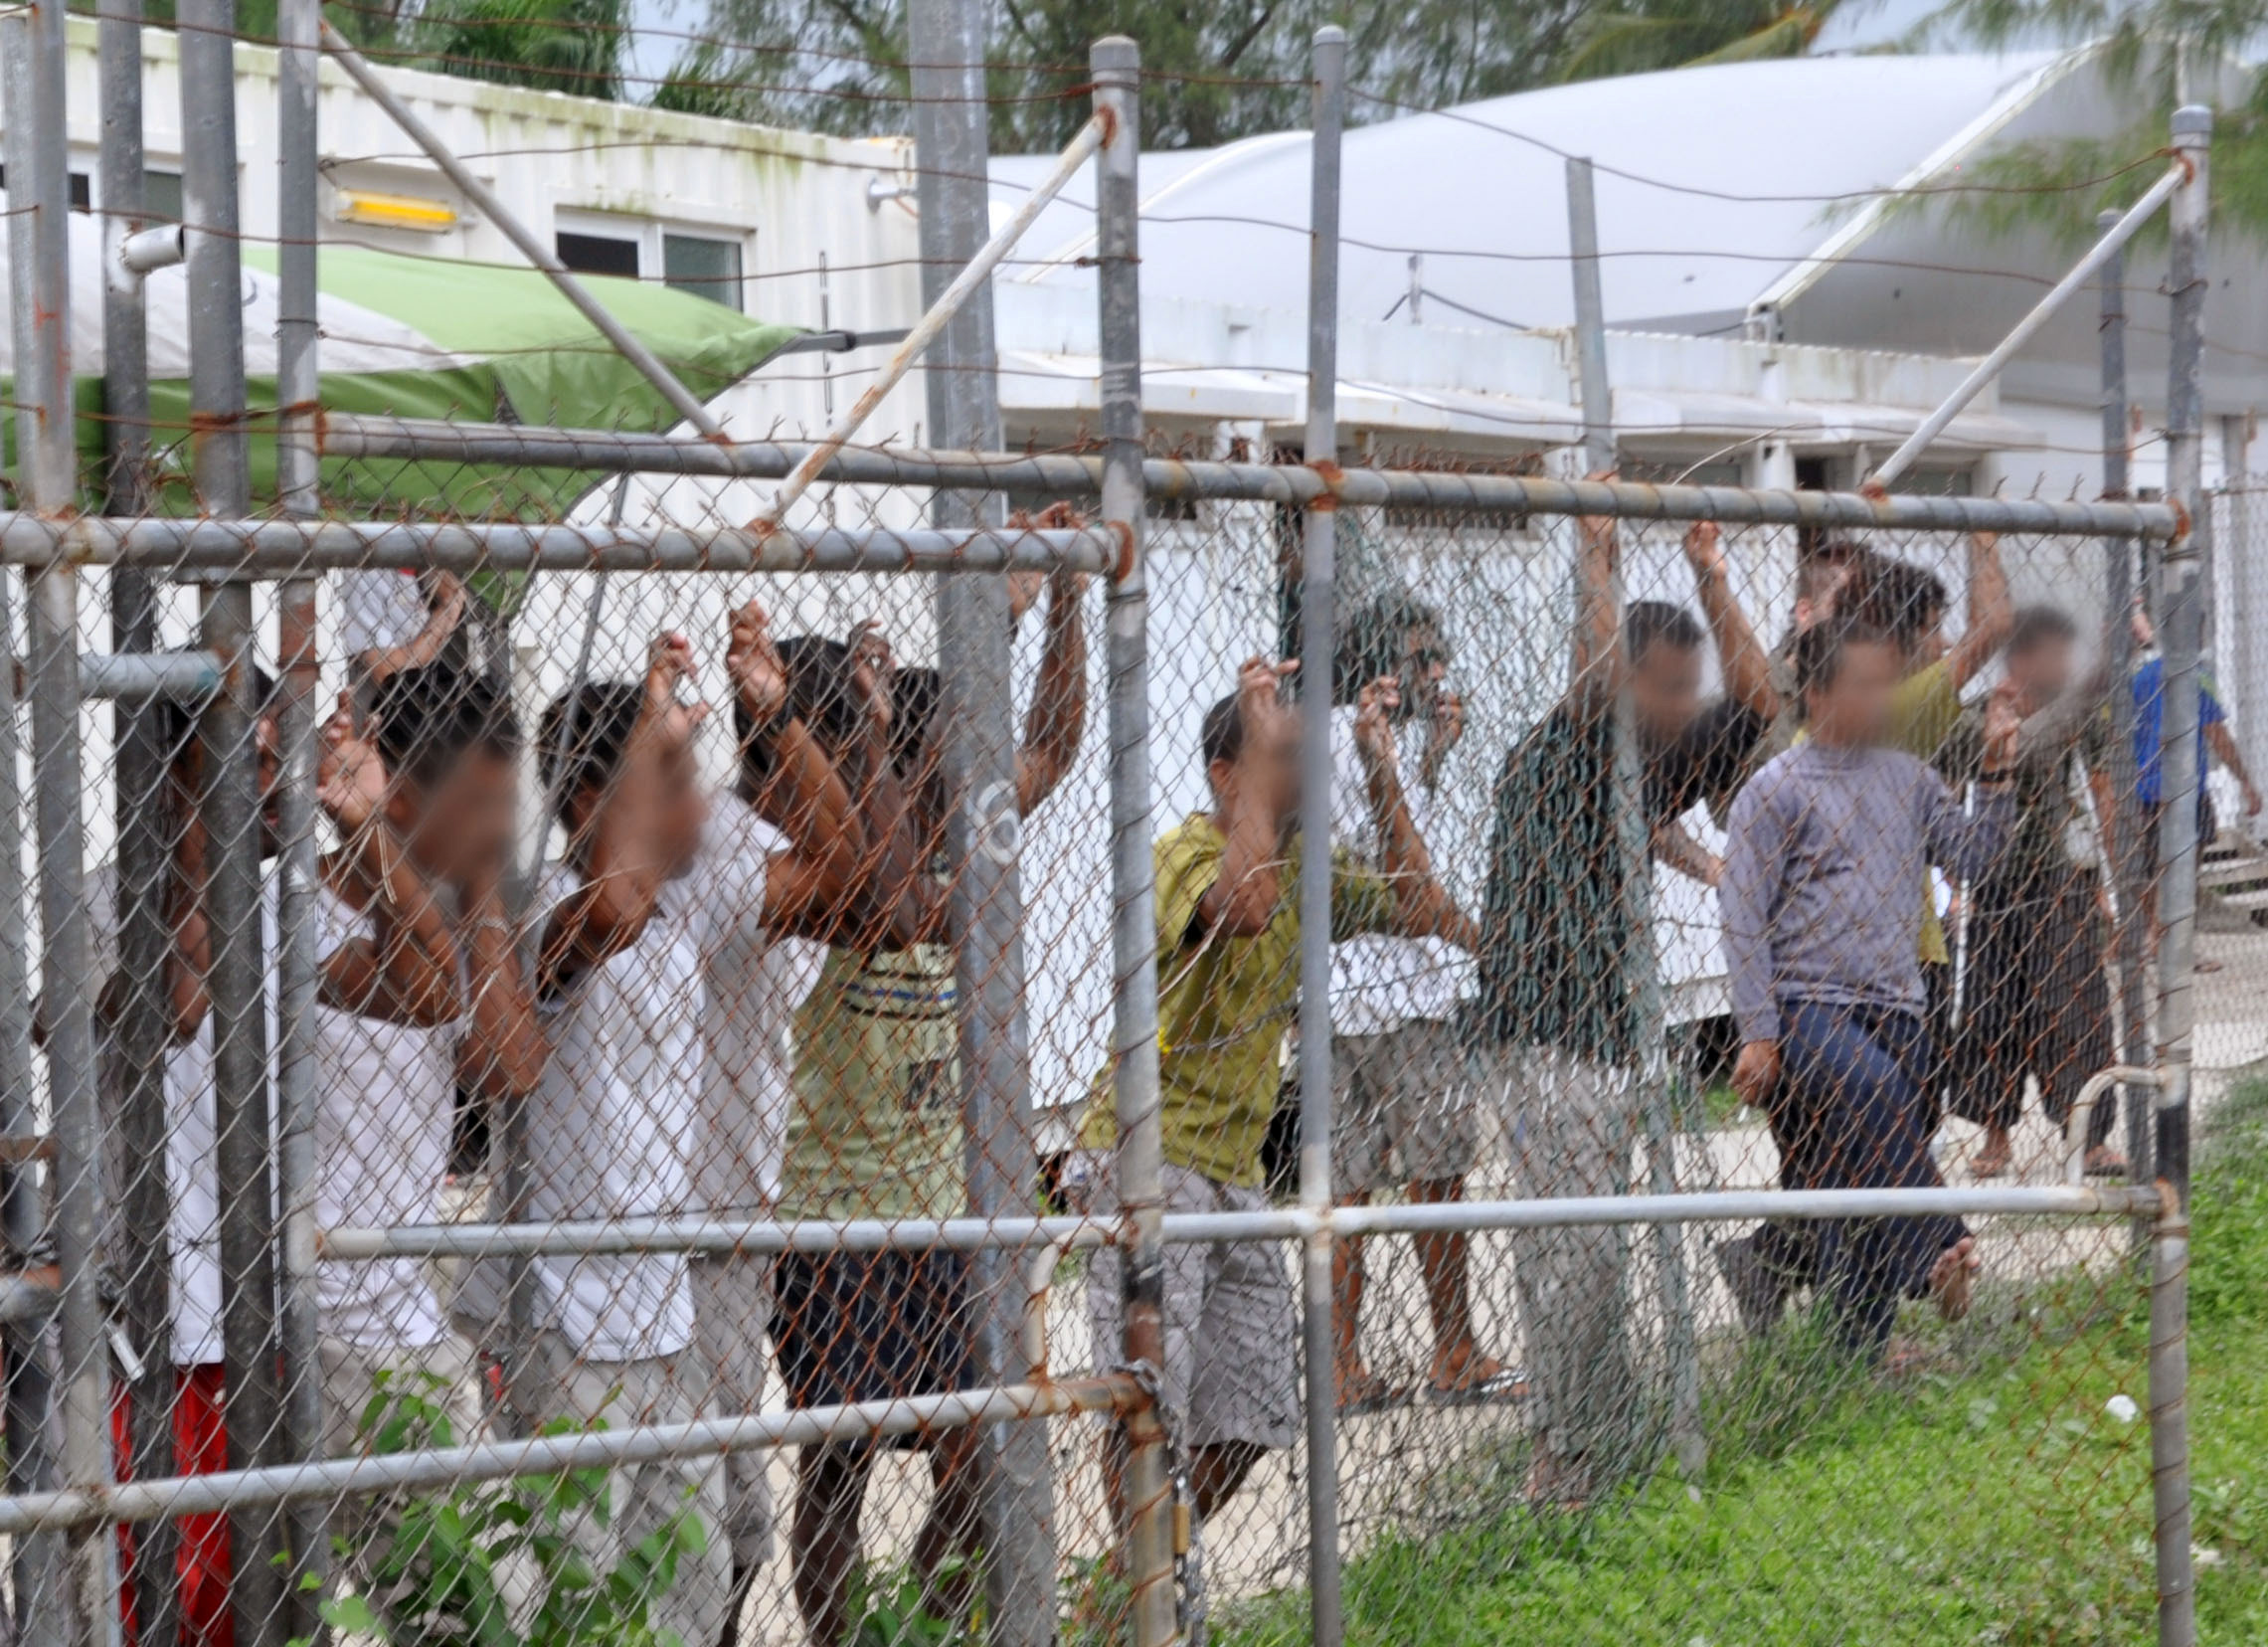 Asylum-seekers look through a fence at the Manus Island detention center in Papua New Guinea March 21, 2014. It is scheduled to close October 31, 2017. Eoin Blackwell/AAP/via Reuters/File Photo ATTENTION EDITORS - FACES PIXELLATED AT SOURCE. THIS PICTURE